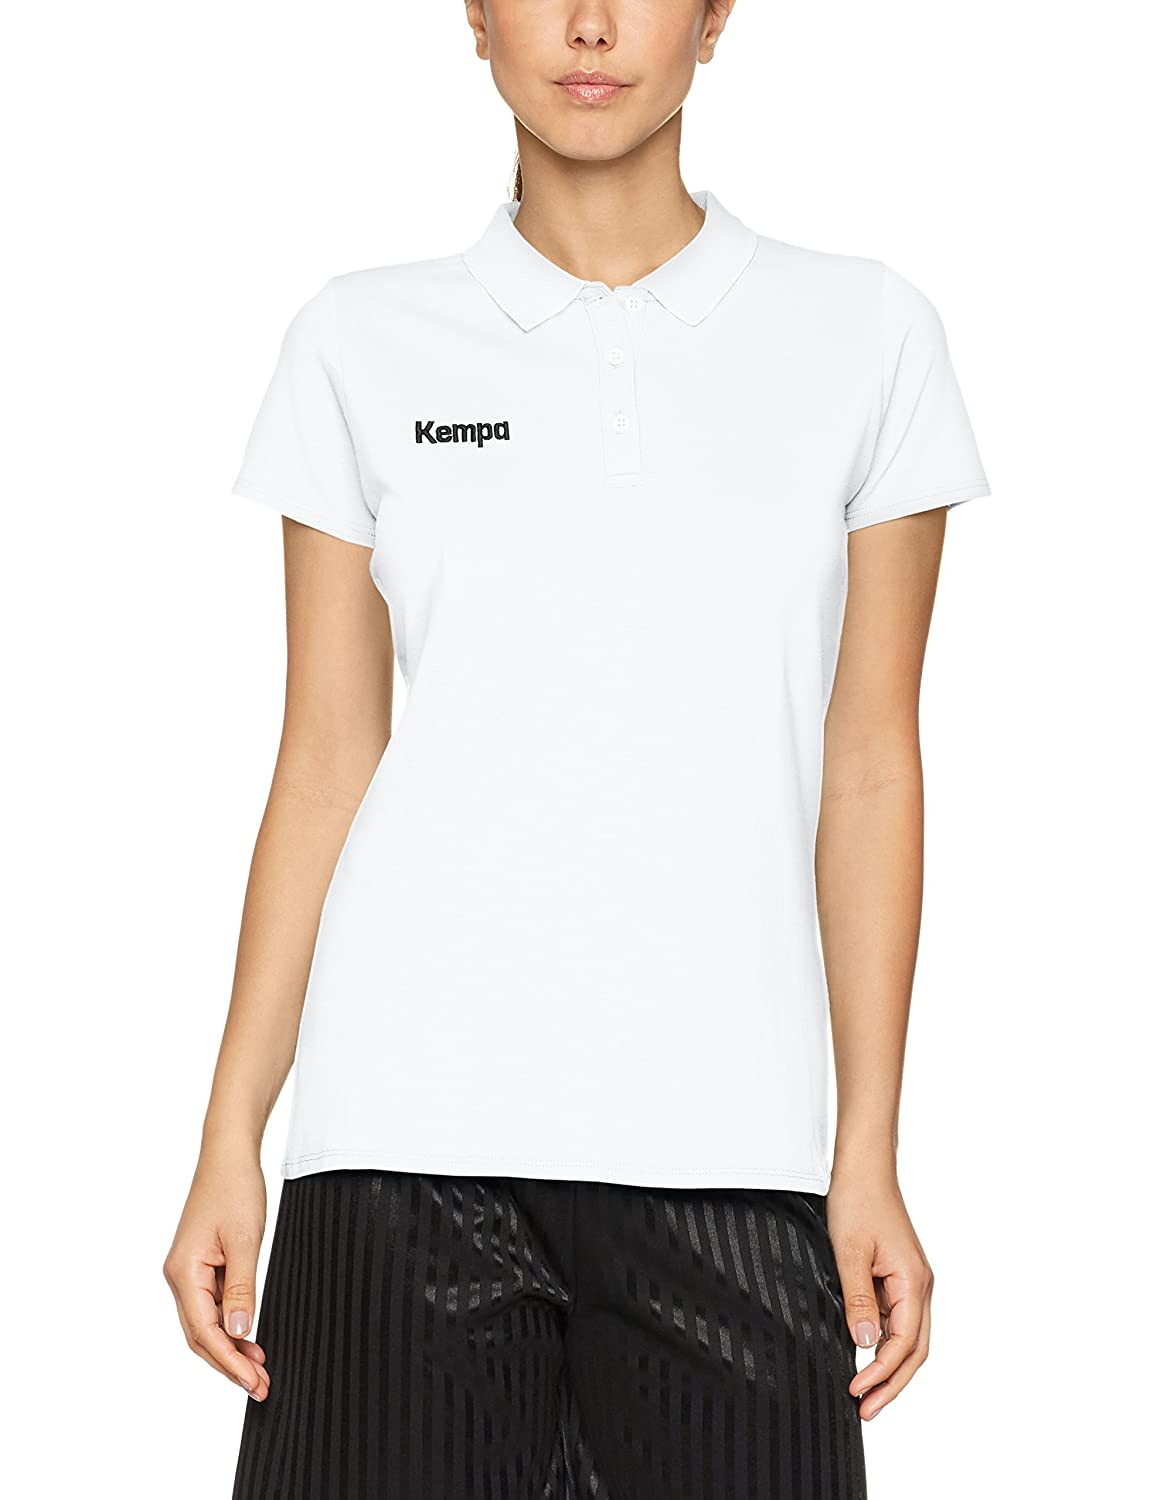 Kempa Polo Shirt-200234707 Damen Shirt